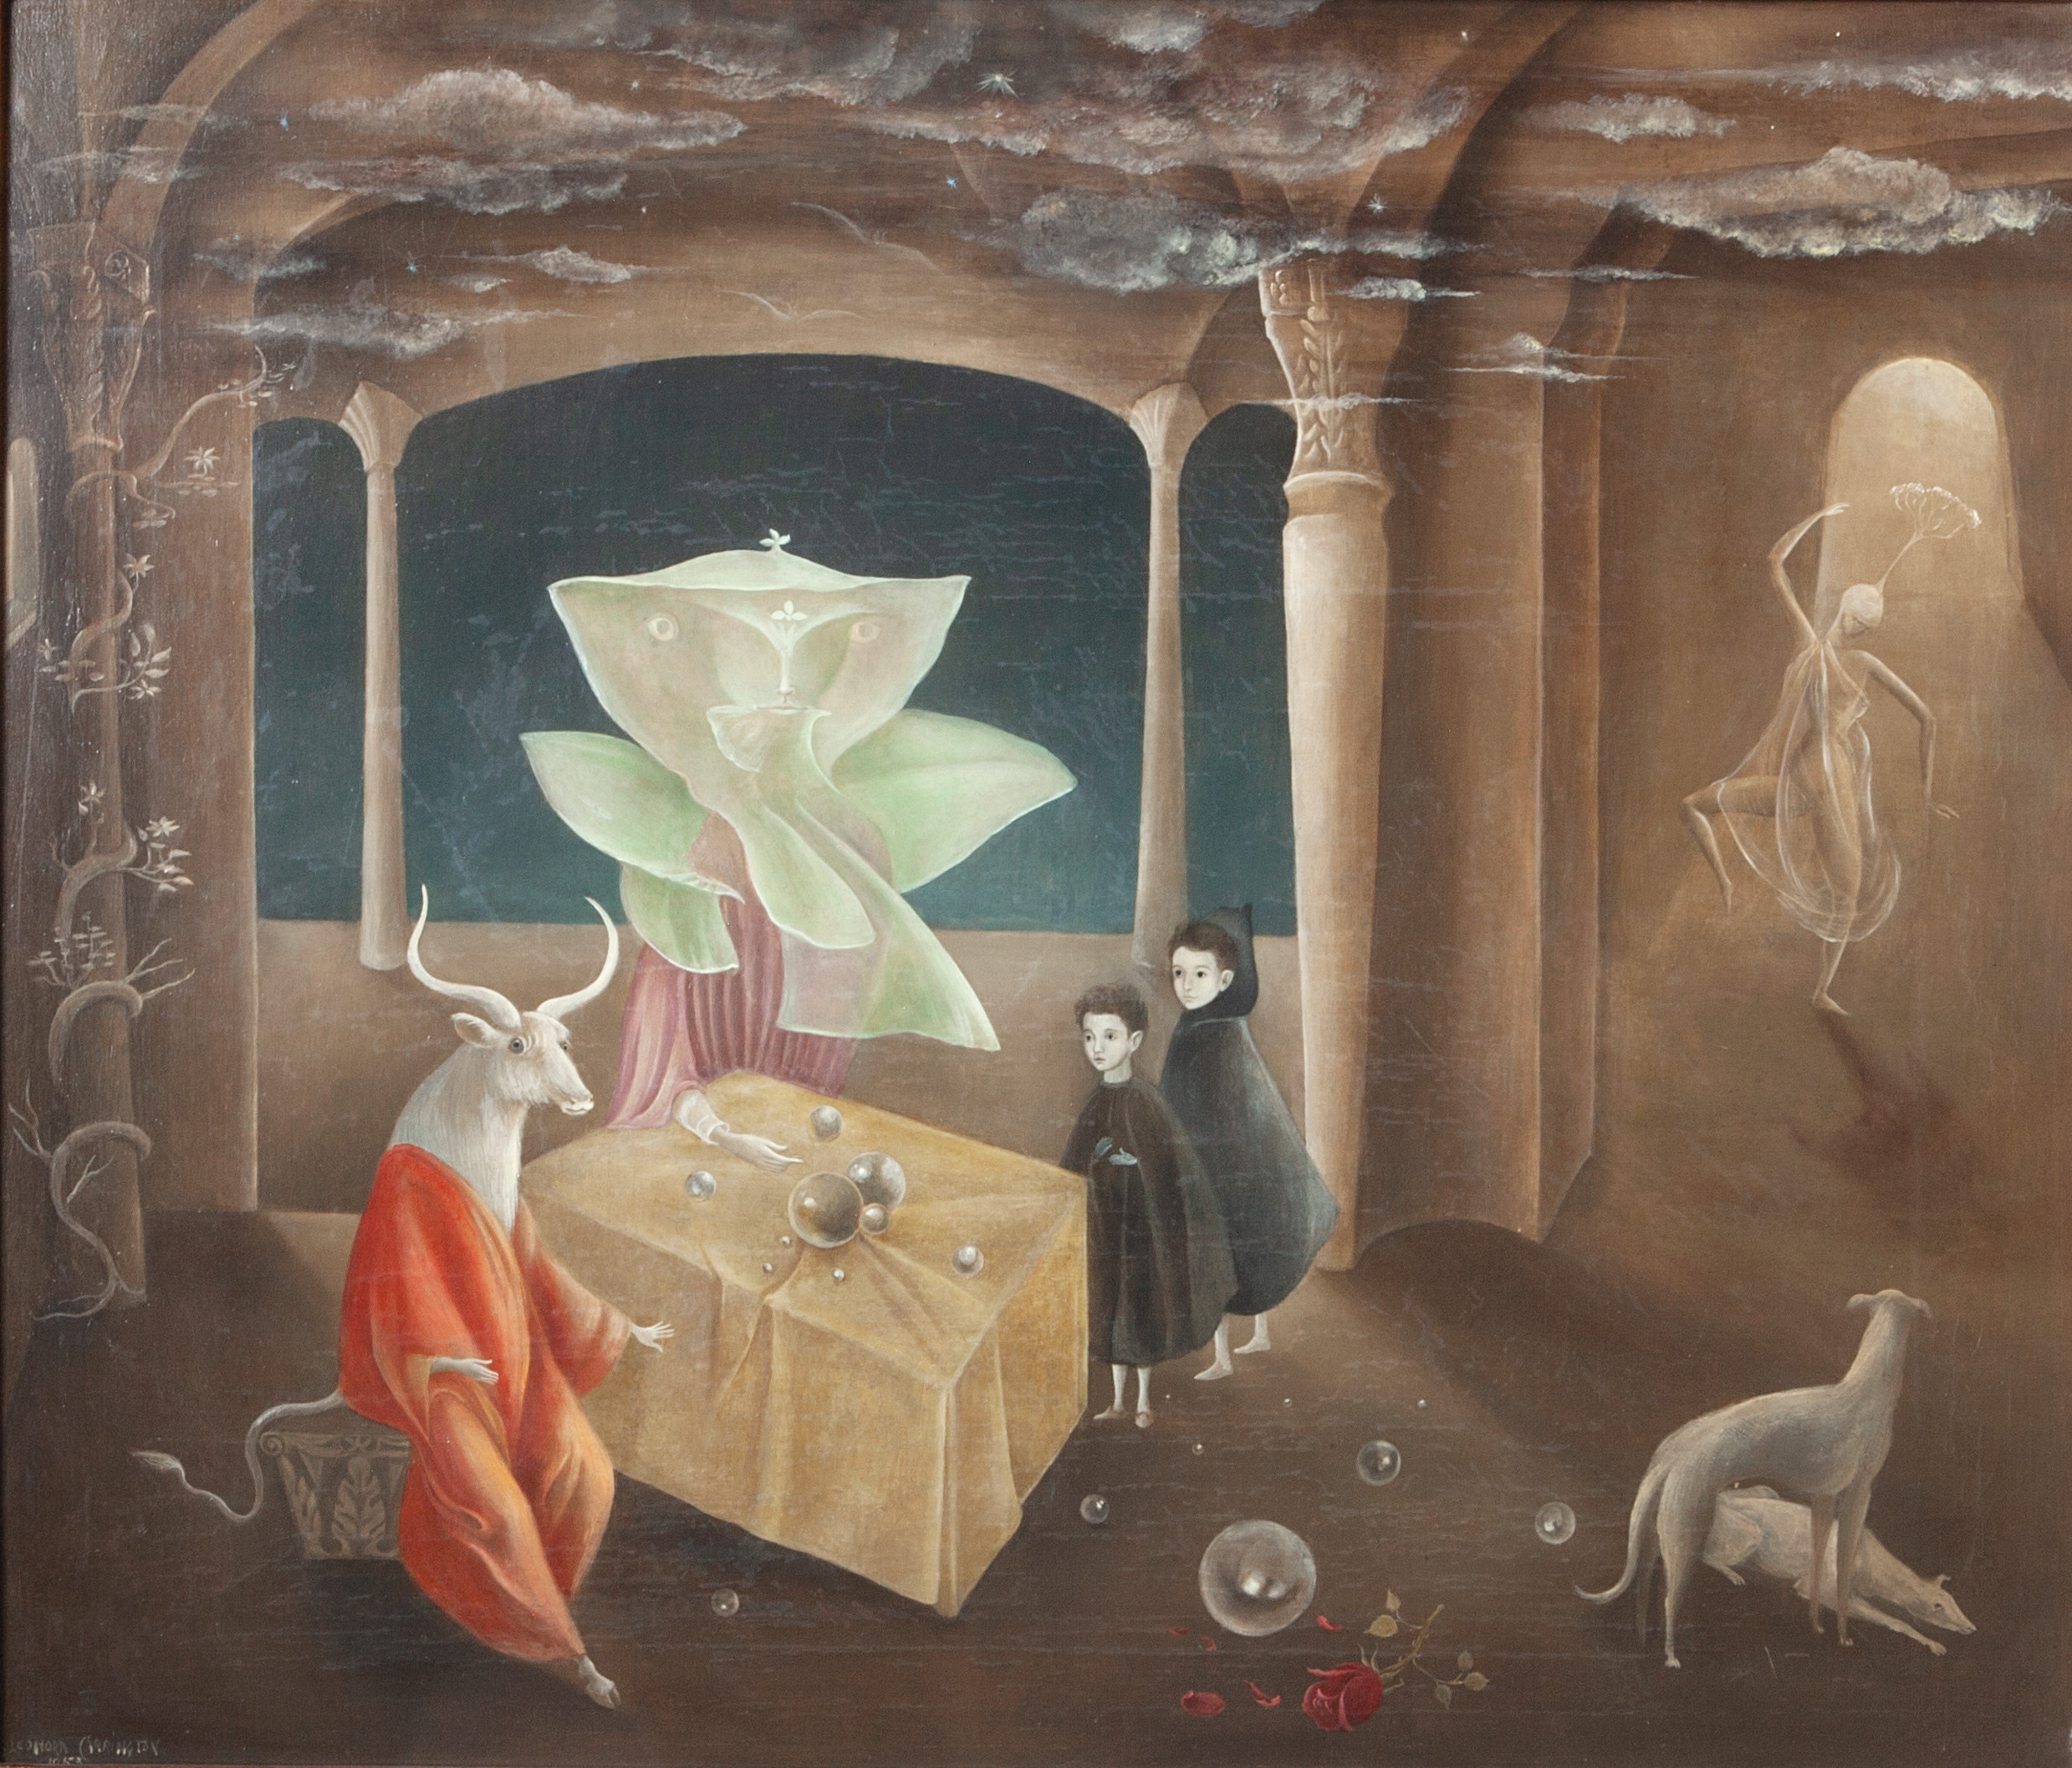 LEONORA CARRINGTON, AND THEN WE SAW THE MINOTAUR!, 1953. COURTESY GALLERY WENDI NORRIS © 2019 ESTATE OF LEONORA CARRINGTON / ARTISTS RIGHTS SOCIETY (ARS), NEW YORK.